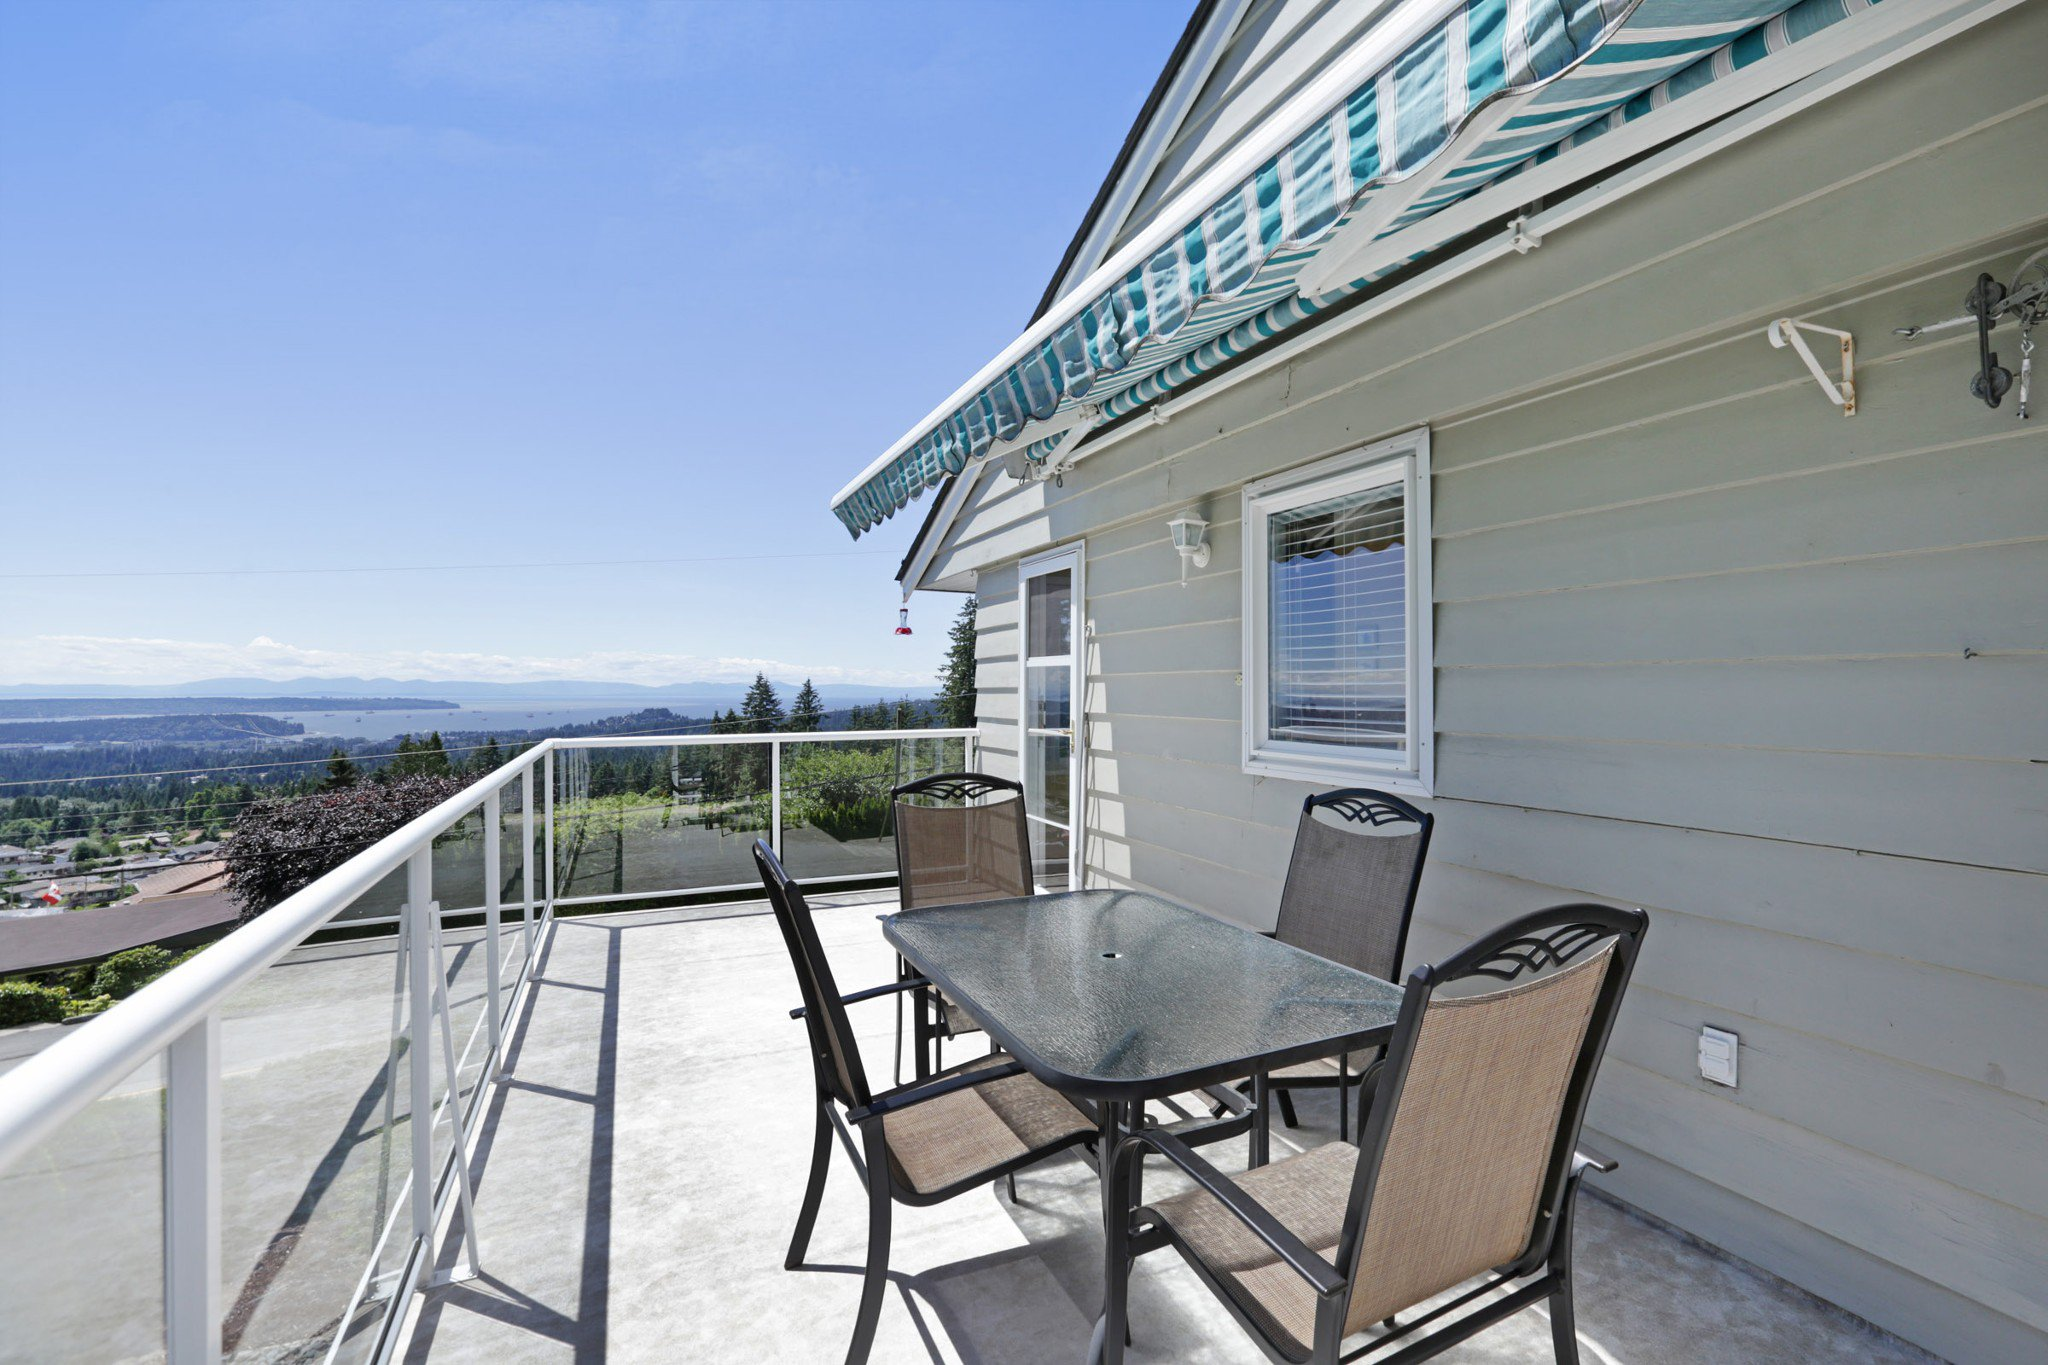 Photo 8: Photos: 372 VENTURA Crescent in North Vancouver: Upper Delbrook House for sale : MLS®# R2284717